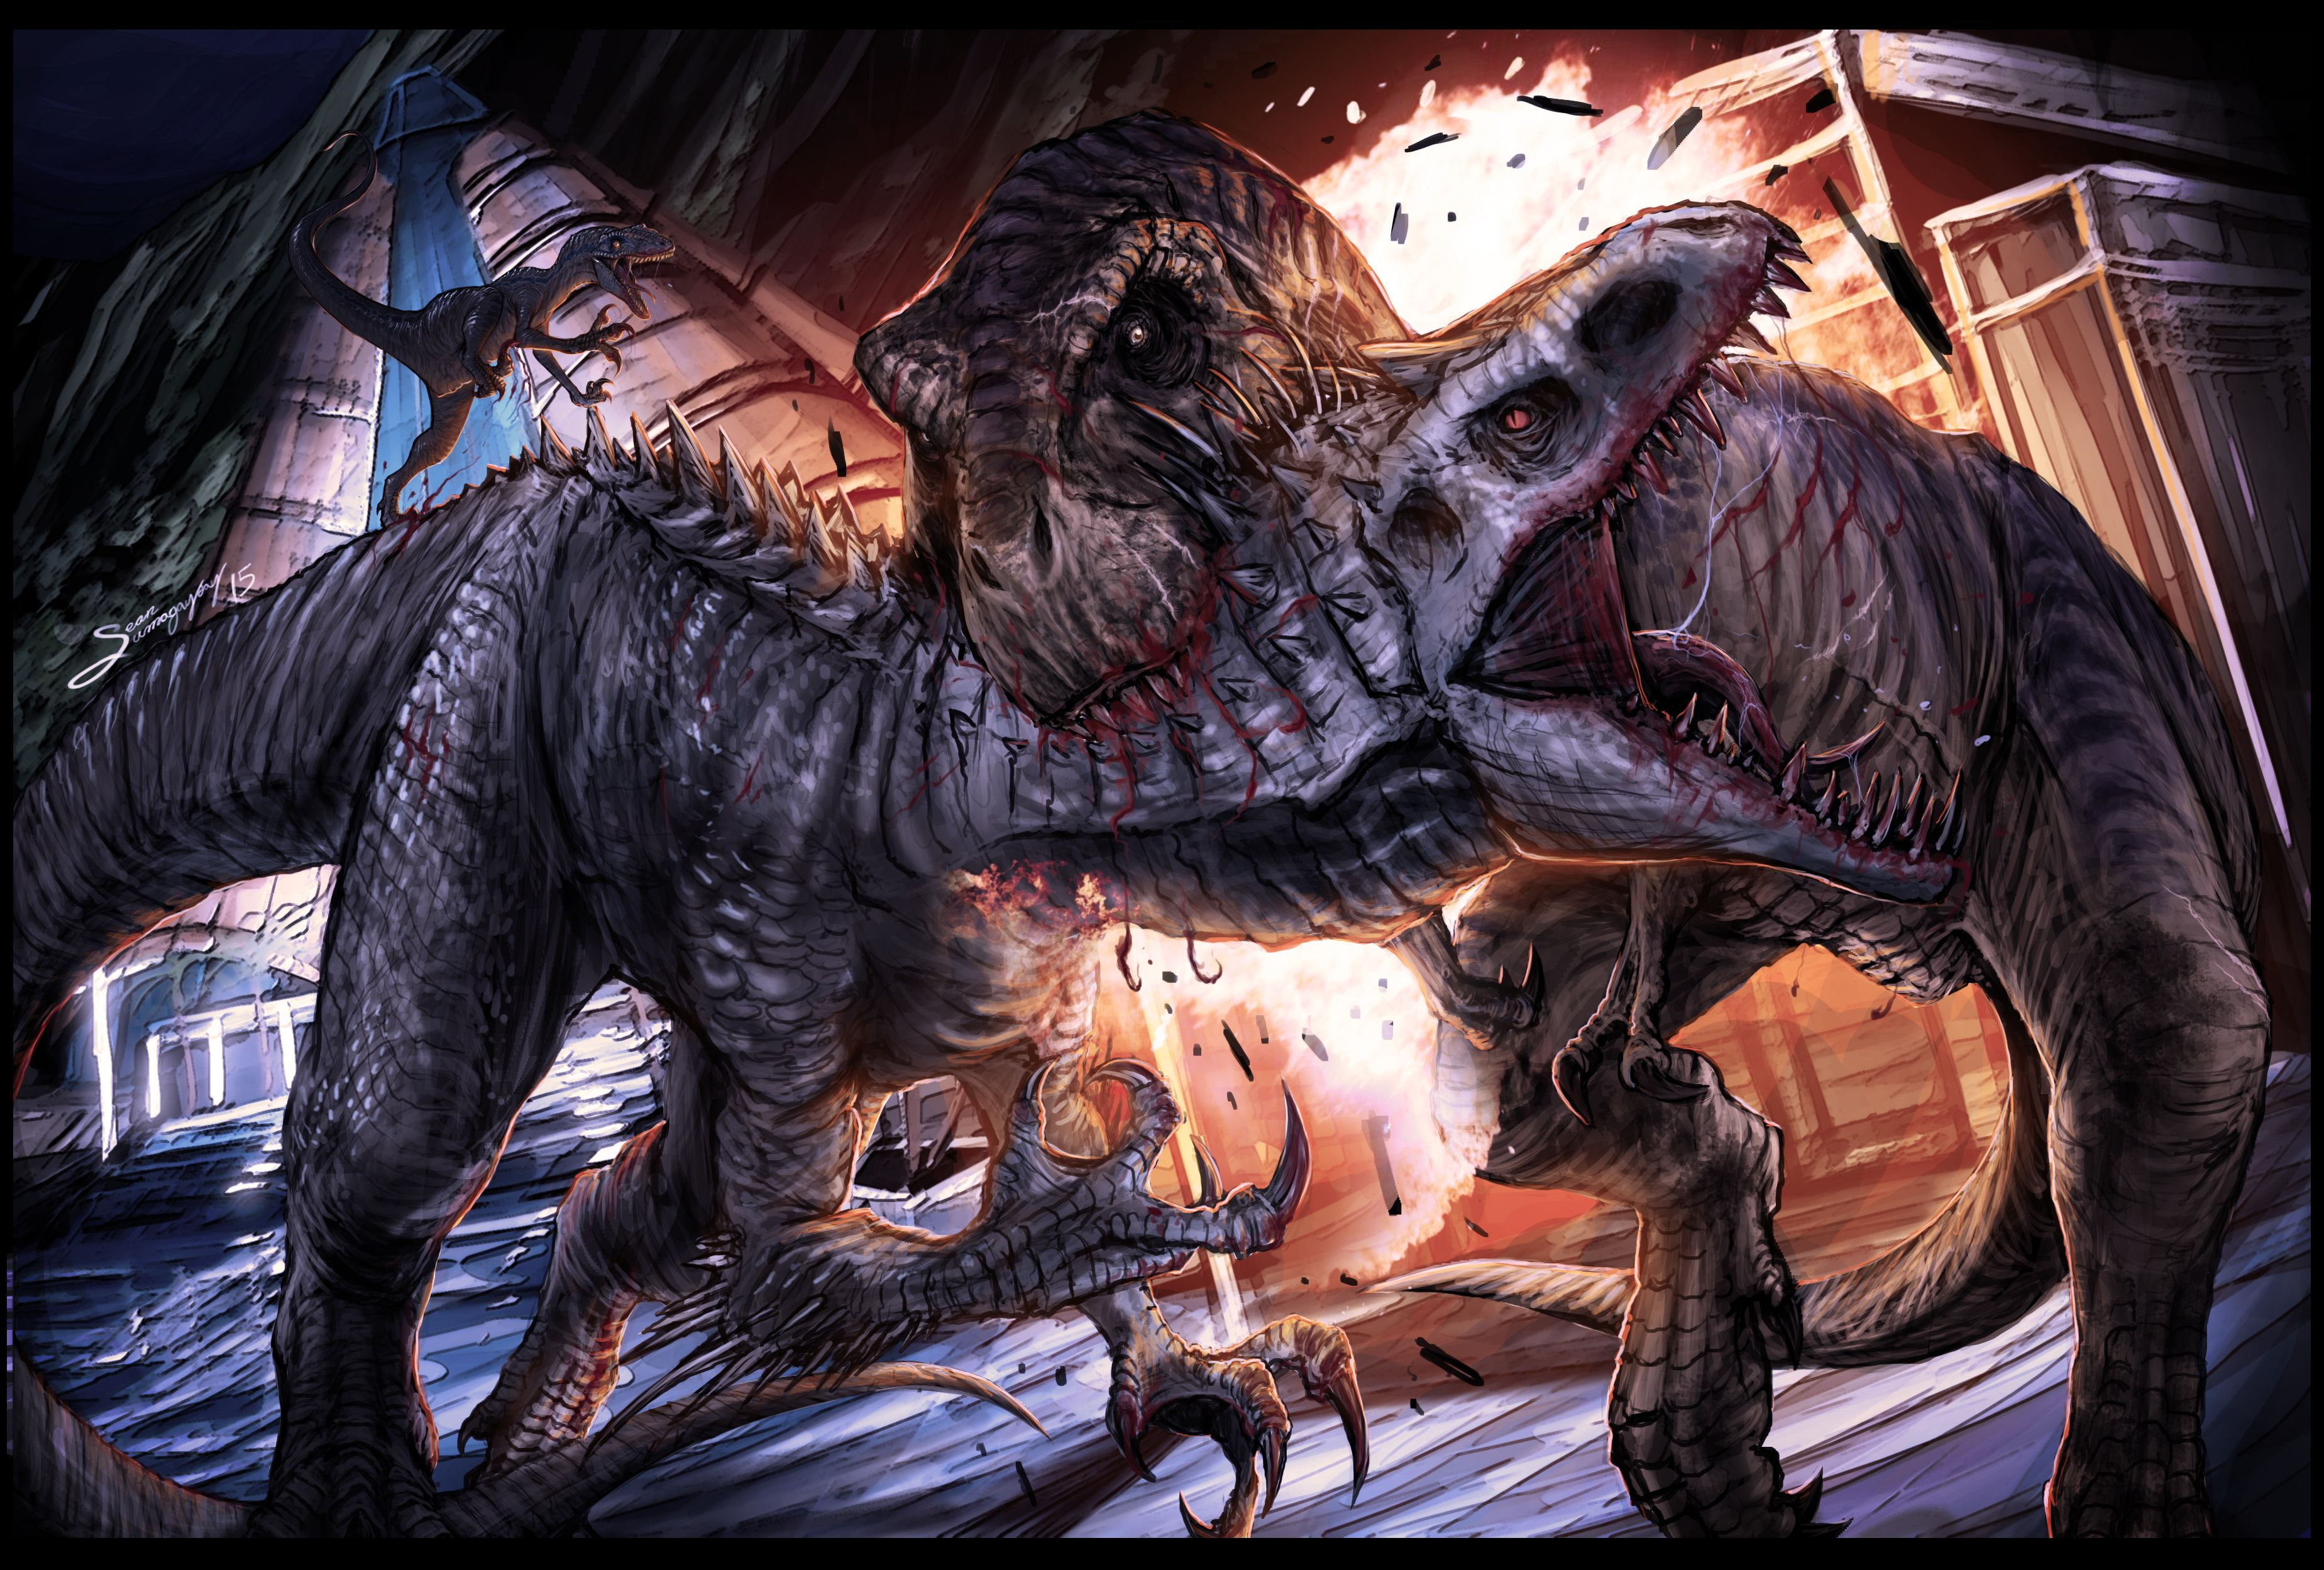 Jurassic park card 3 by chicagocubsfan24 on deviantart - Jurassic Park 2 The Lost World By Sharkeytrike On Deviantart In The Jaws Of The Jurassic Pinterest Movie Steven Spielberg Movies And Steven